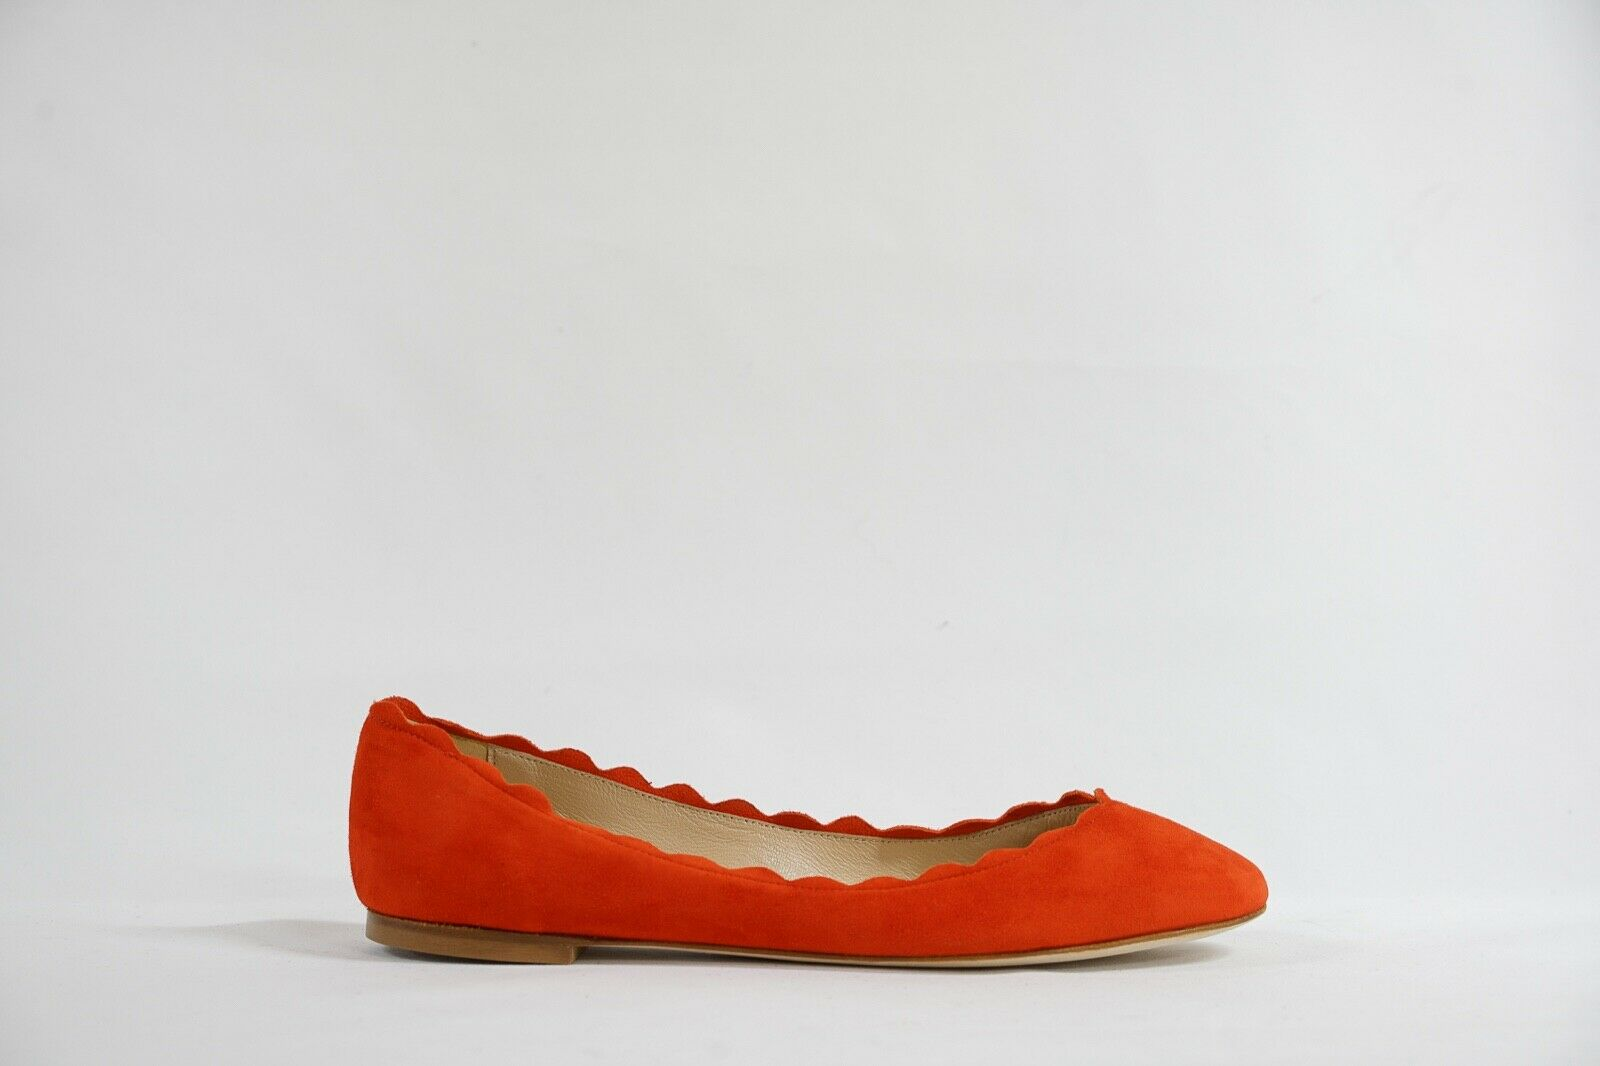 Fabio Rusconi Women's Suede Orange Ballerina Flat Shoe S1795